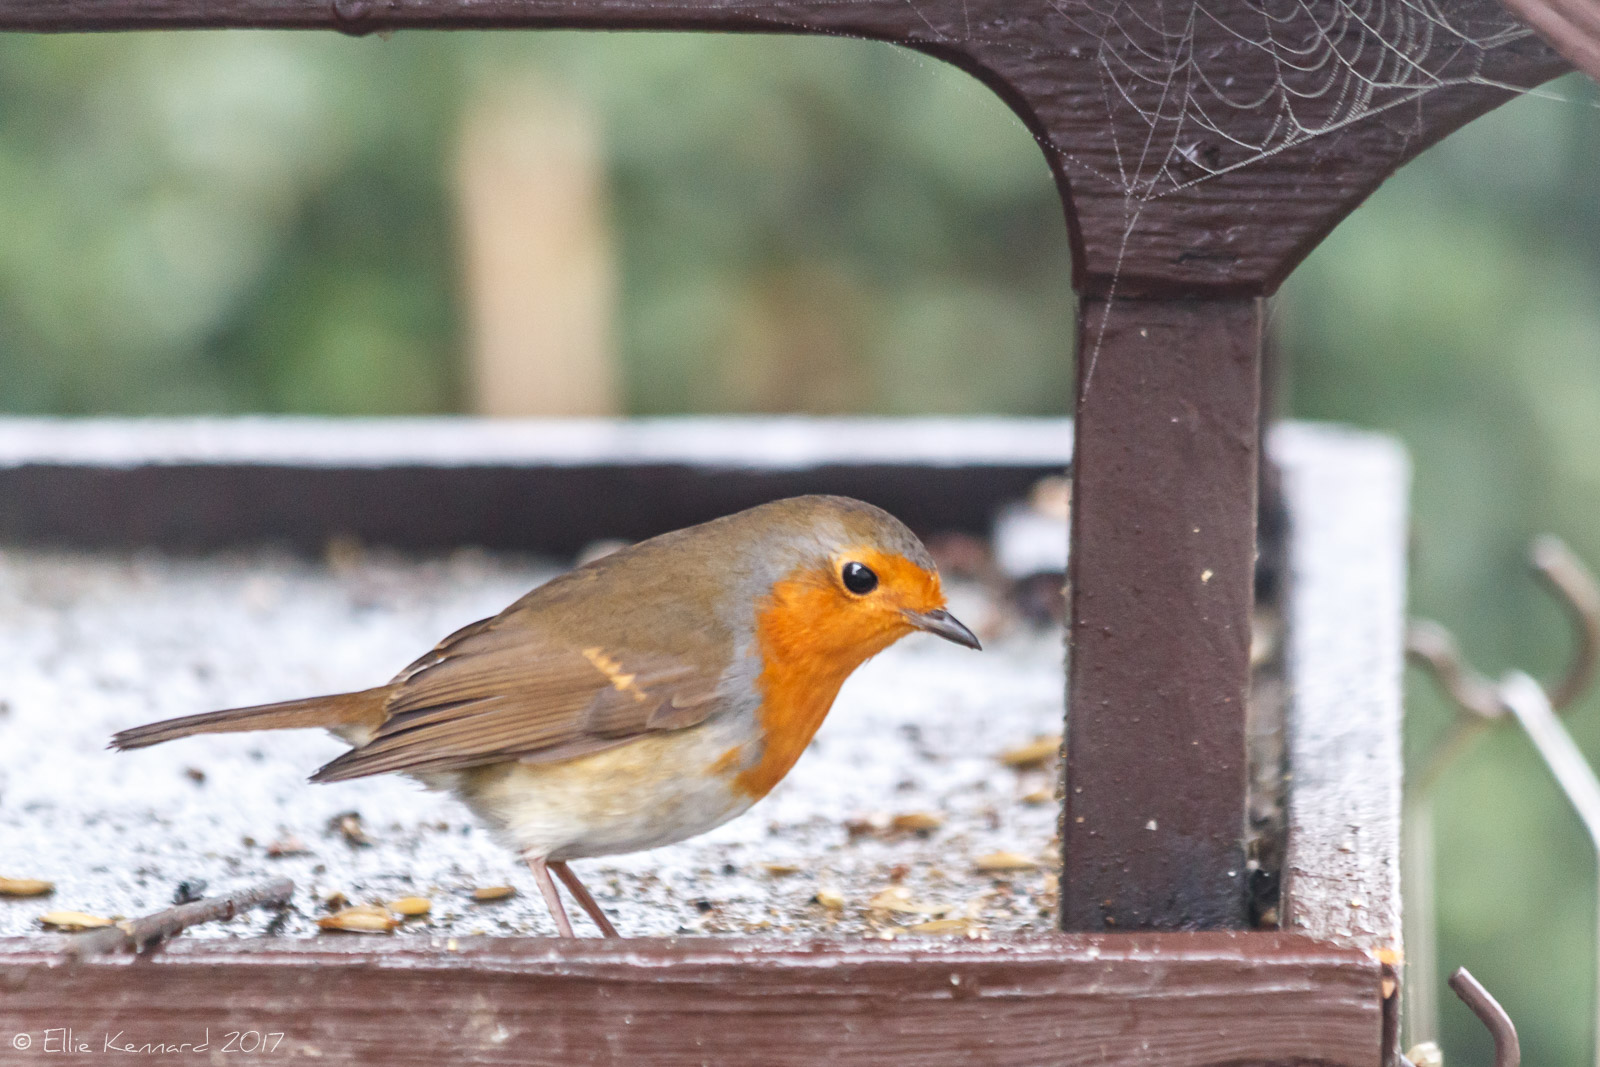 Robin on feeder - Ellie Kennard 2016